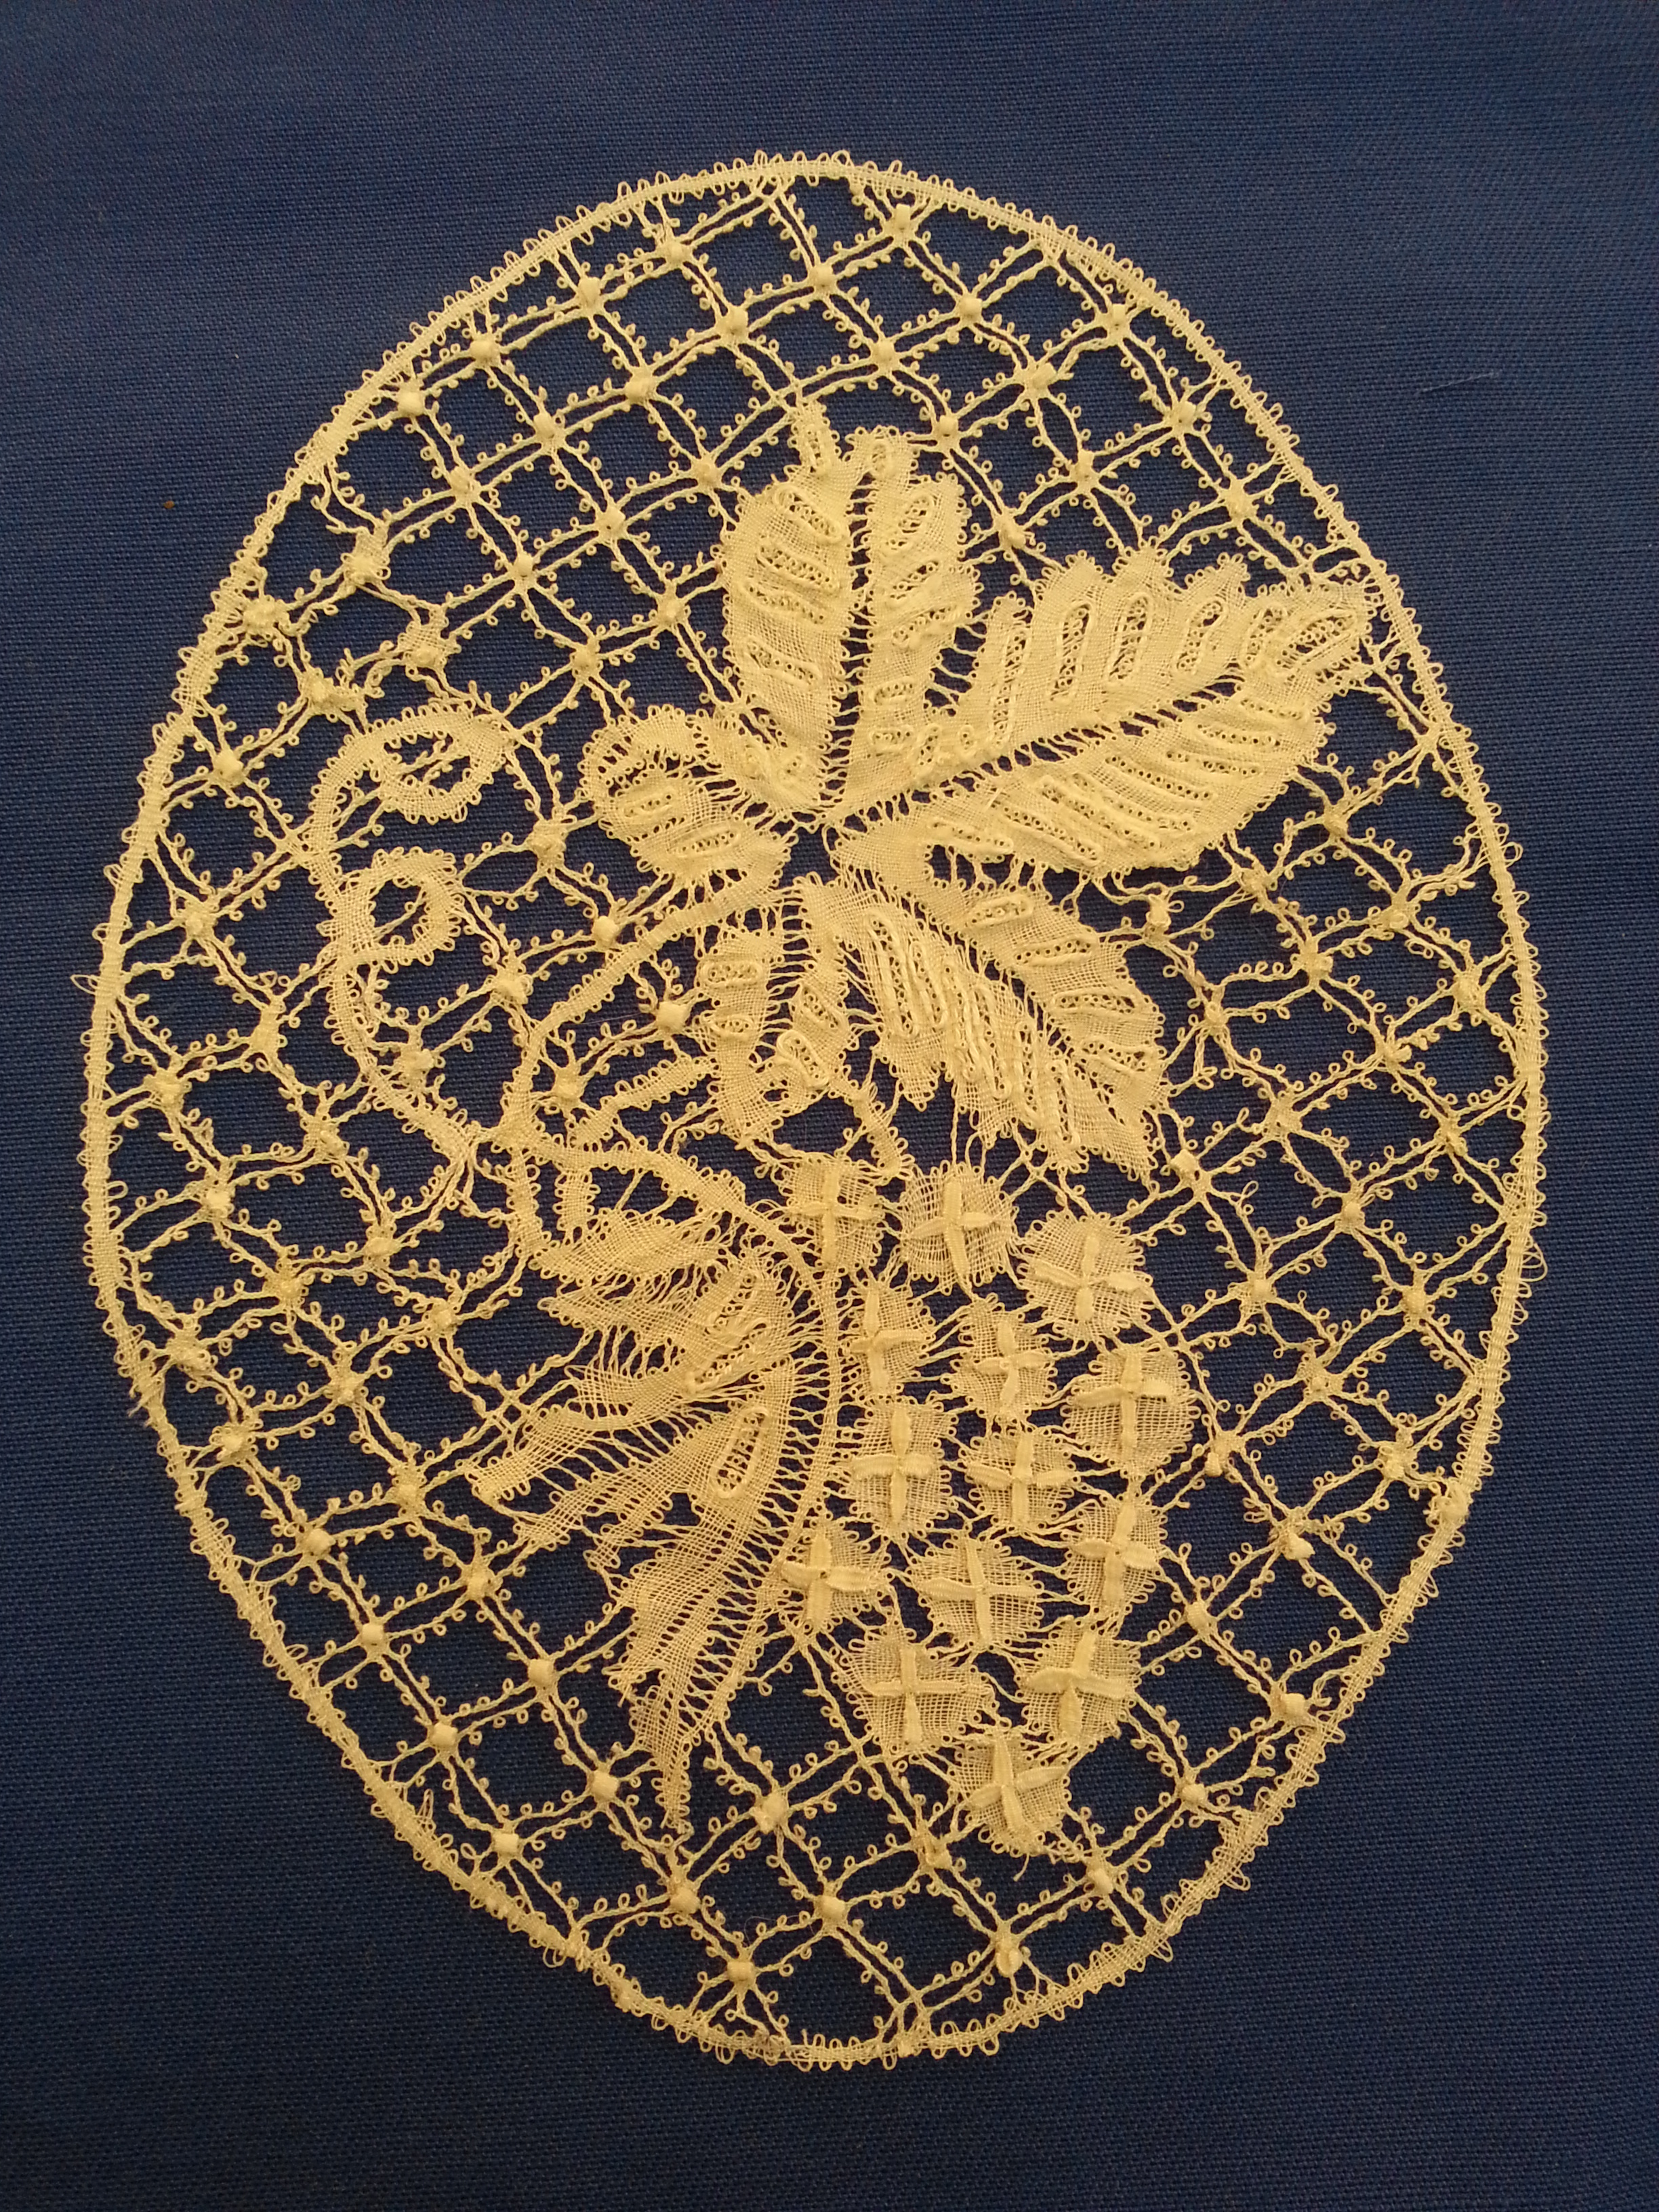 Advanced Bedfordshire Lace by Maria Provencher and Eva Fergoda